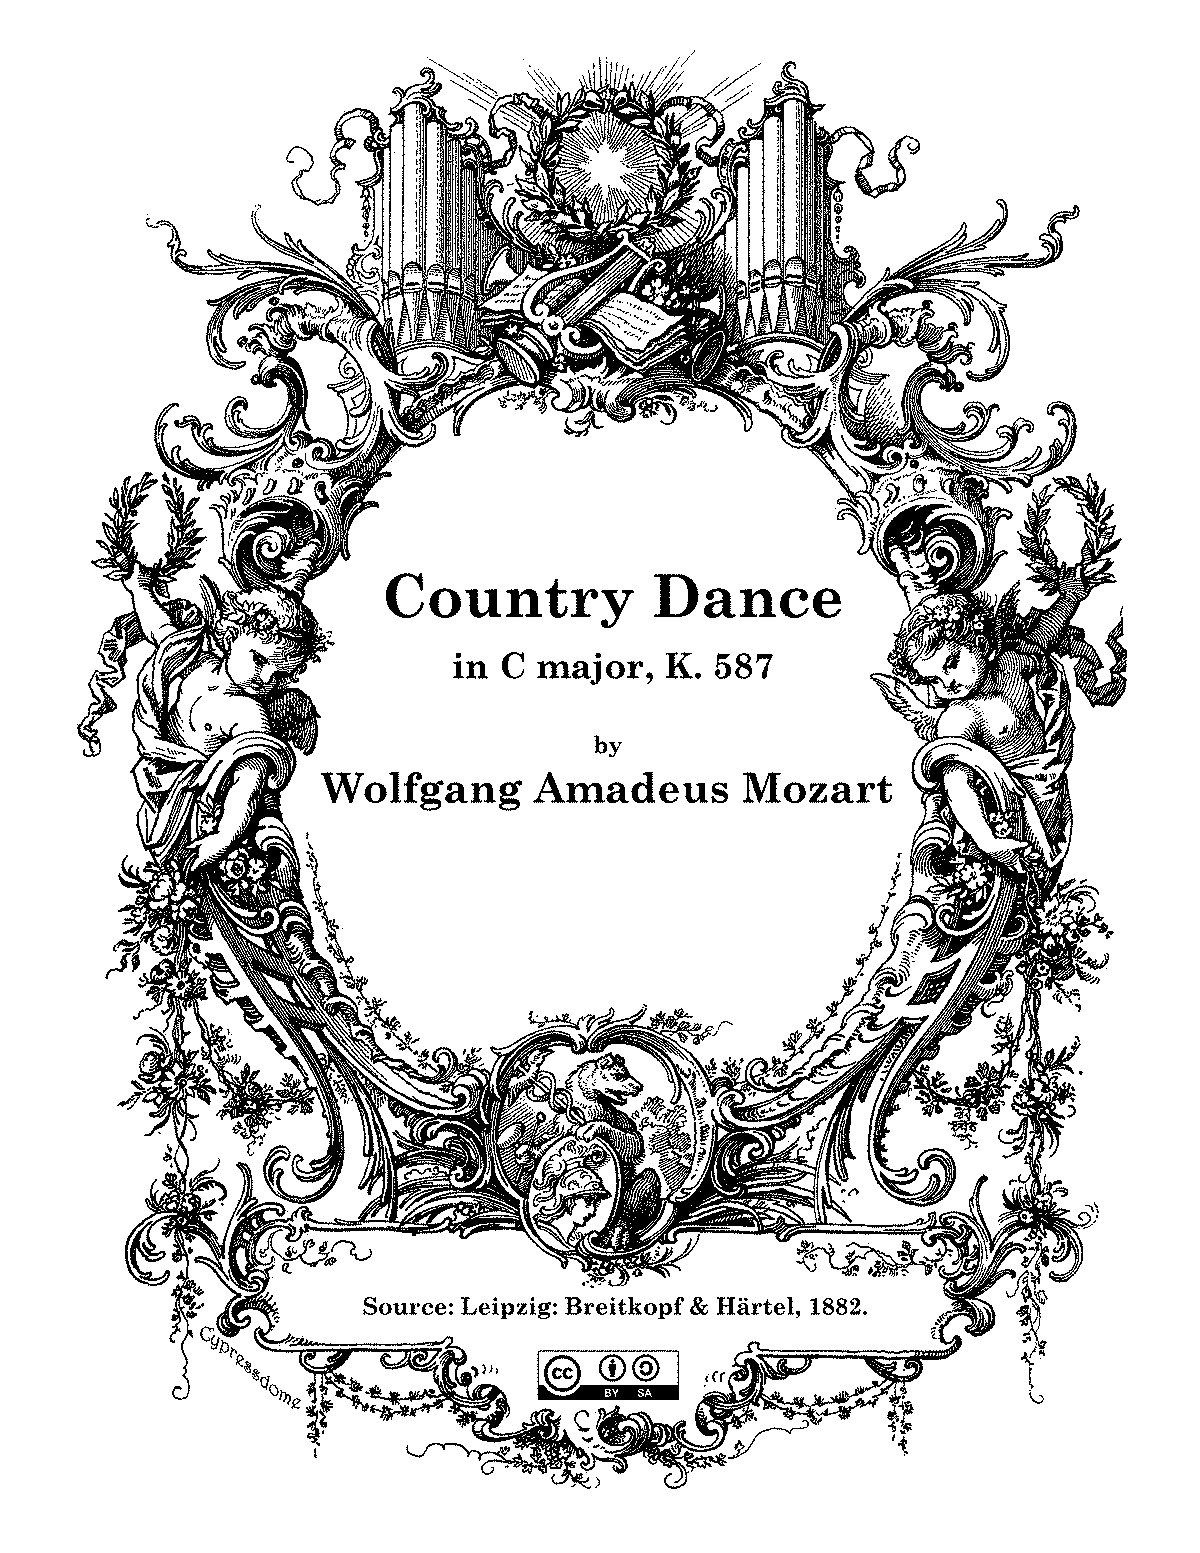 PMLP160418-WAMozart Country Dance in C major, K.587 fullscore.pdf